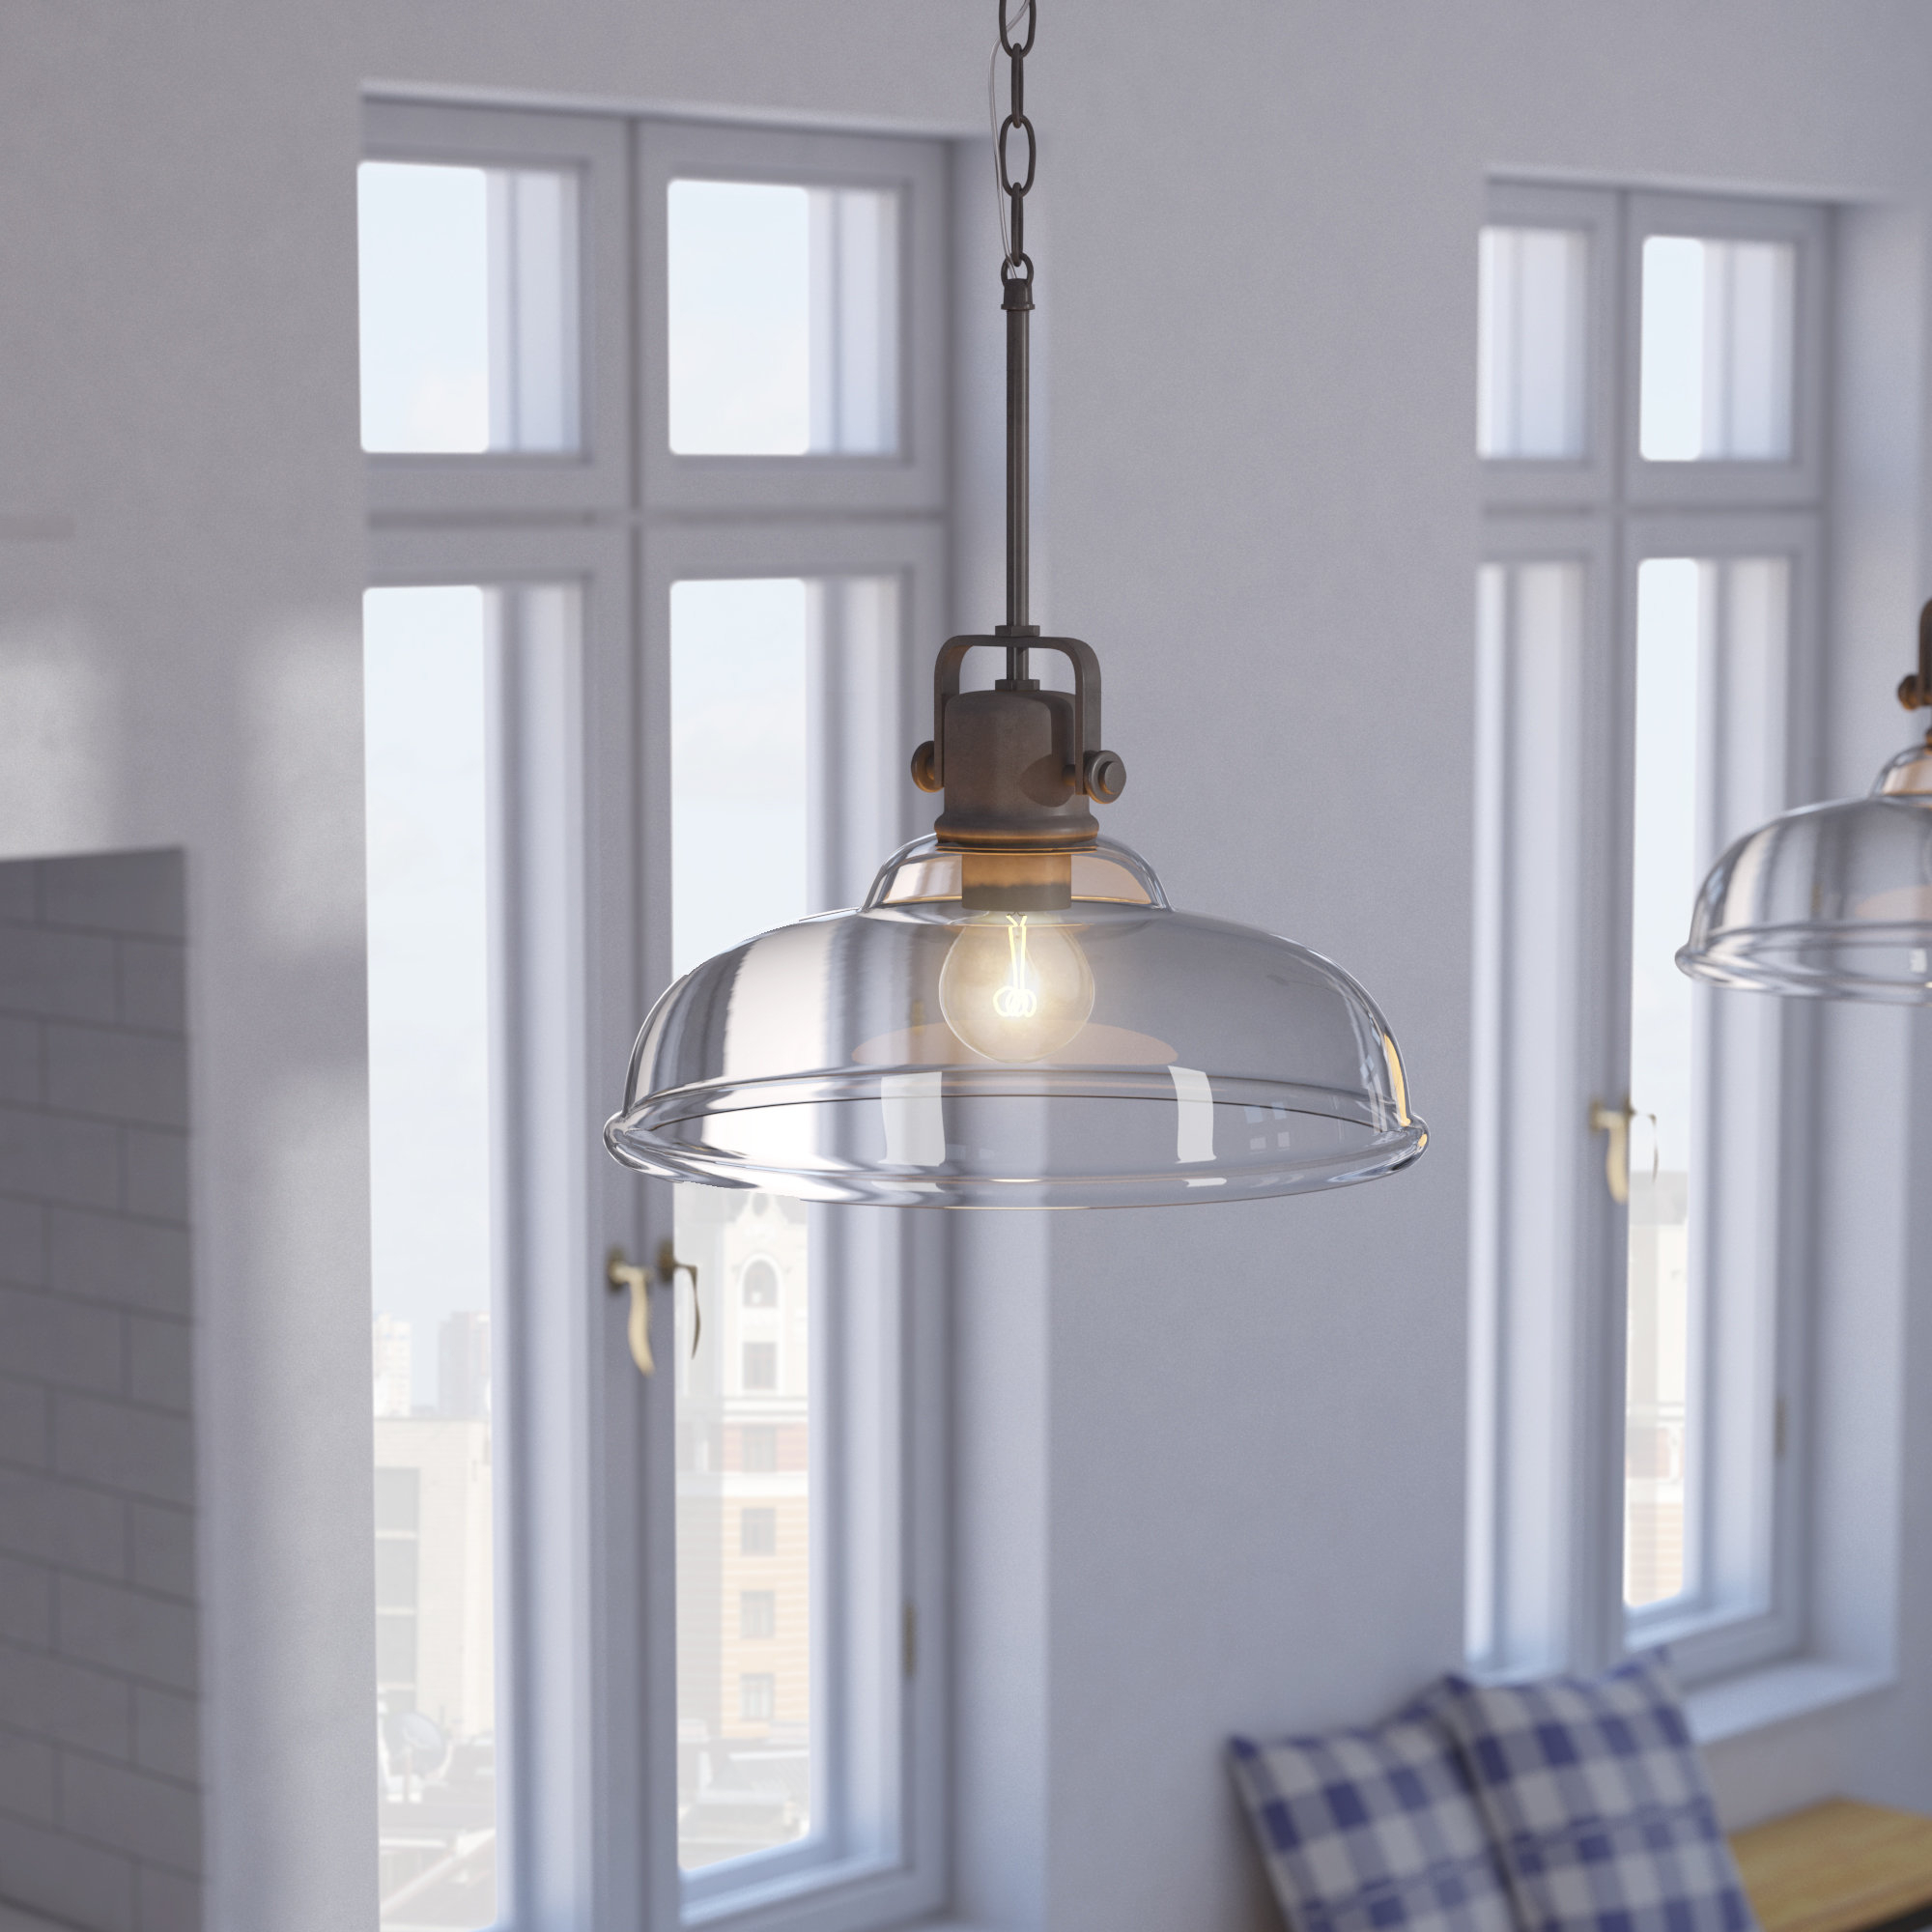 Fuhrmann Inverted 1 Light Dome Pendant With Regard To Well Known Fresno Dome 1 Light Bell Pendants (View 14 of 20)